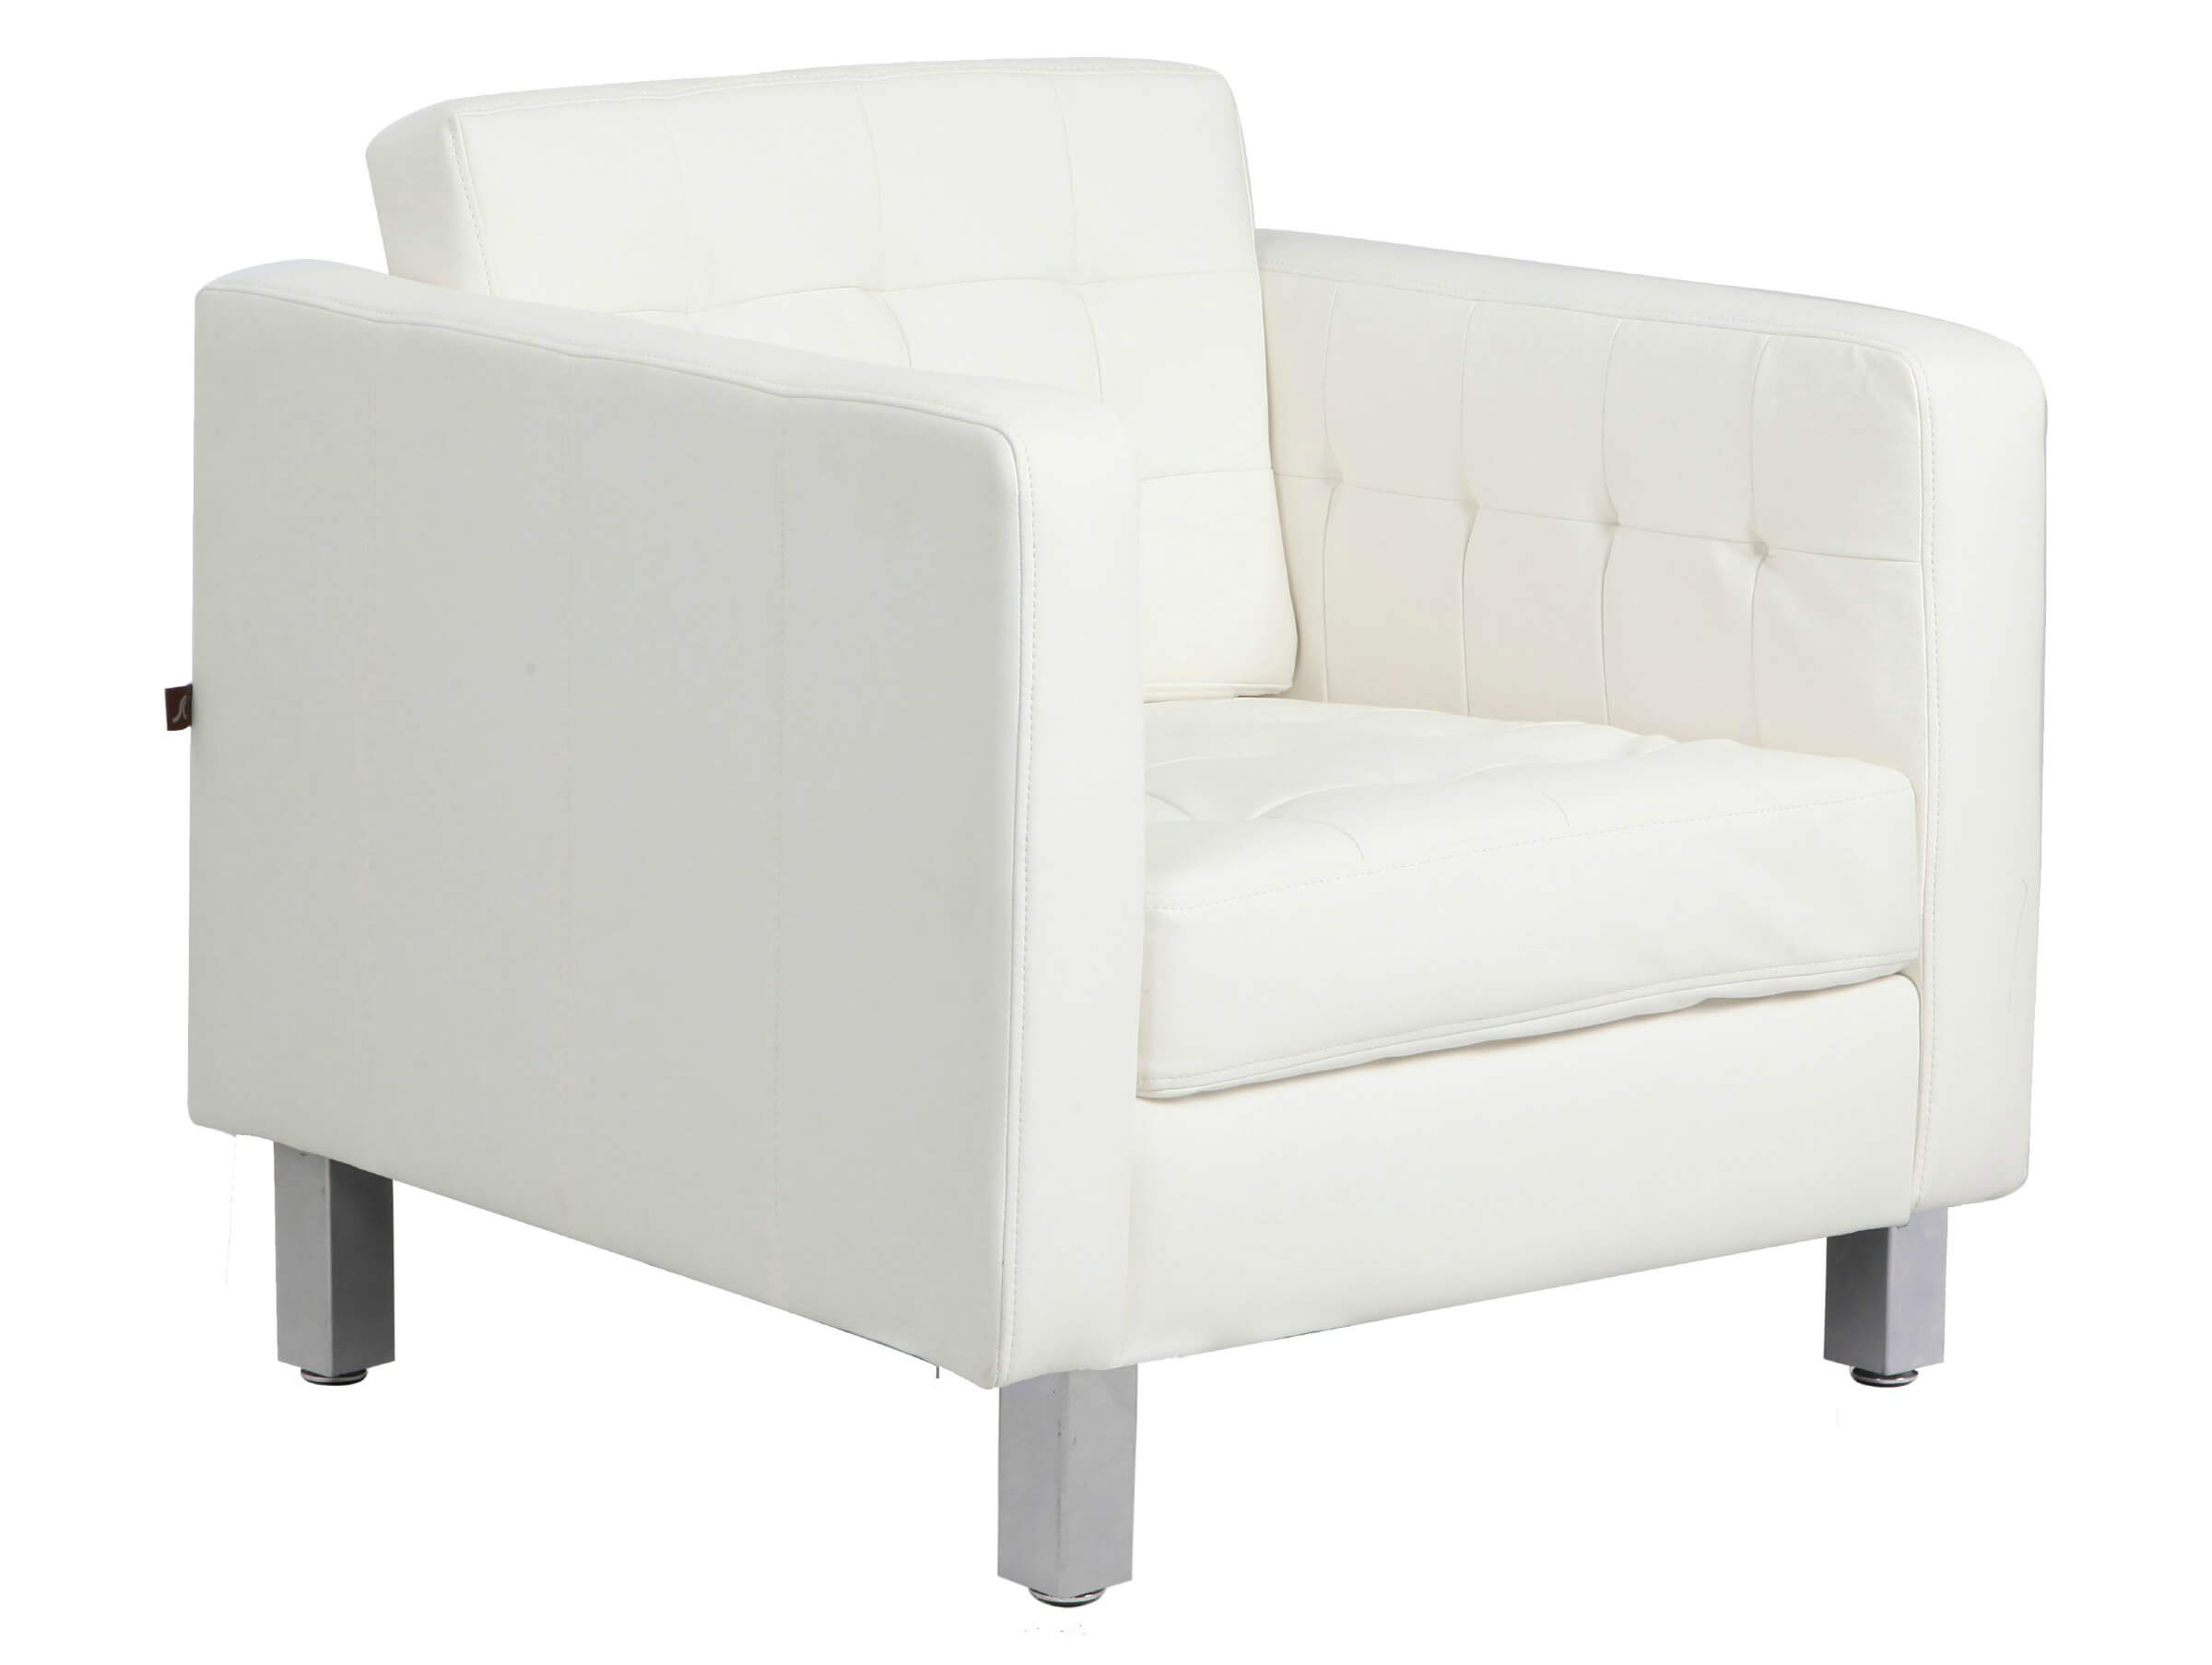 Buttoned, bonded white leather design of this Rissanti accent chair holds wide, comfortable cushion seating and classic angled shape for versatile use.